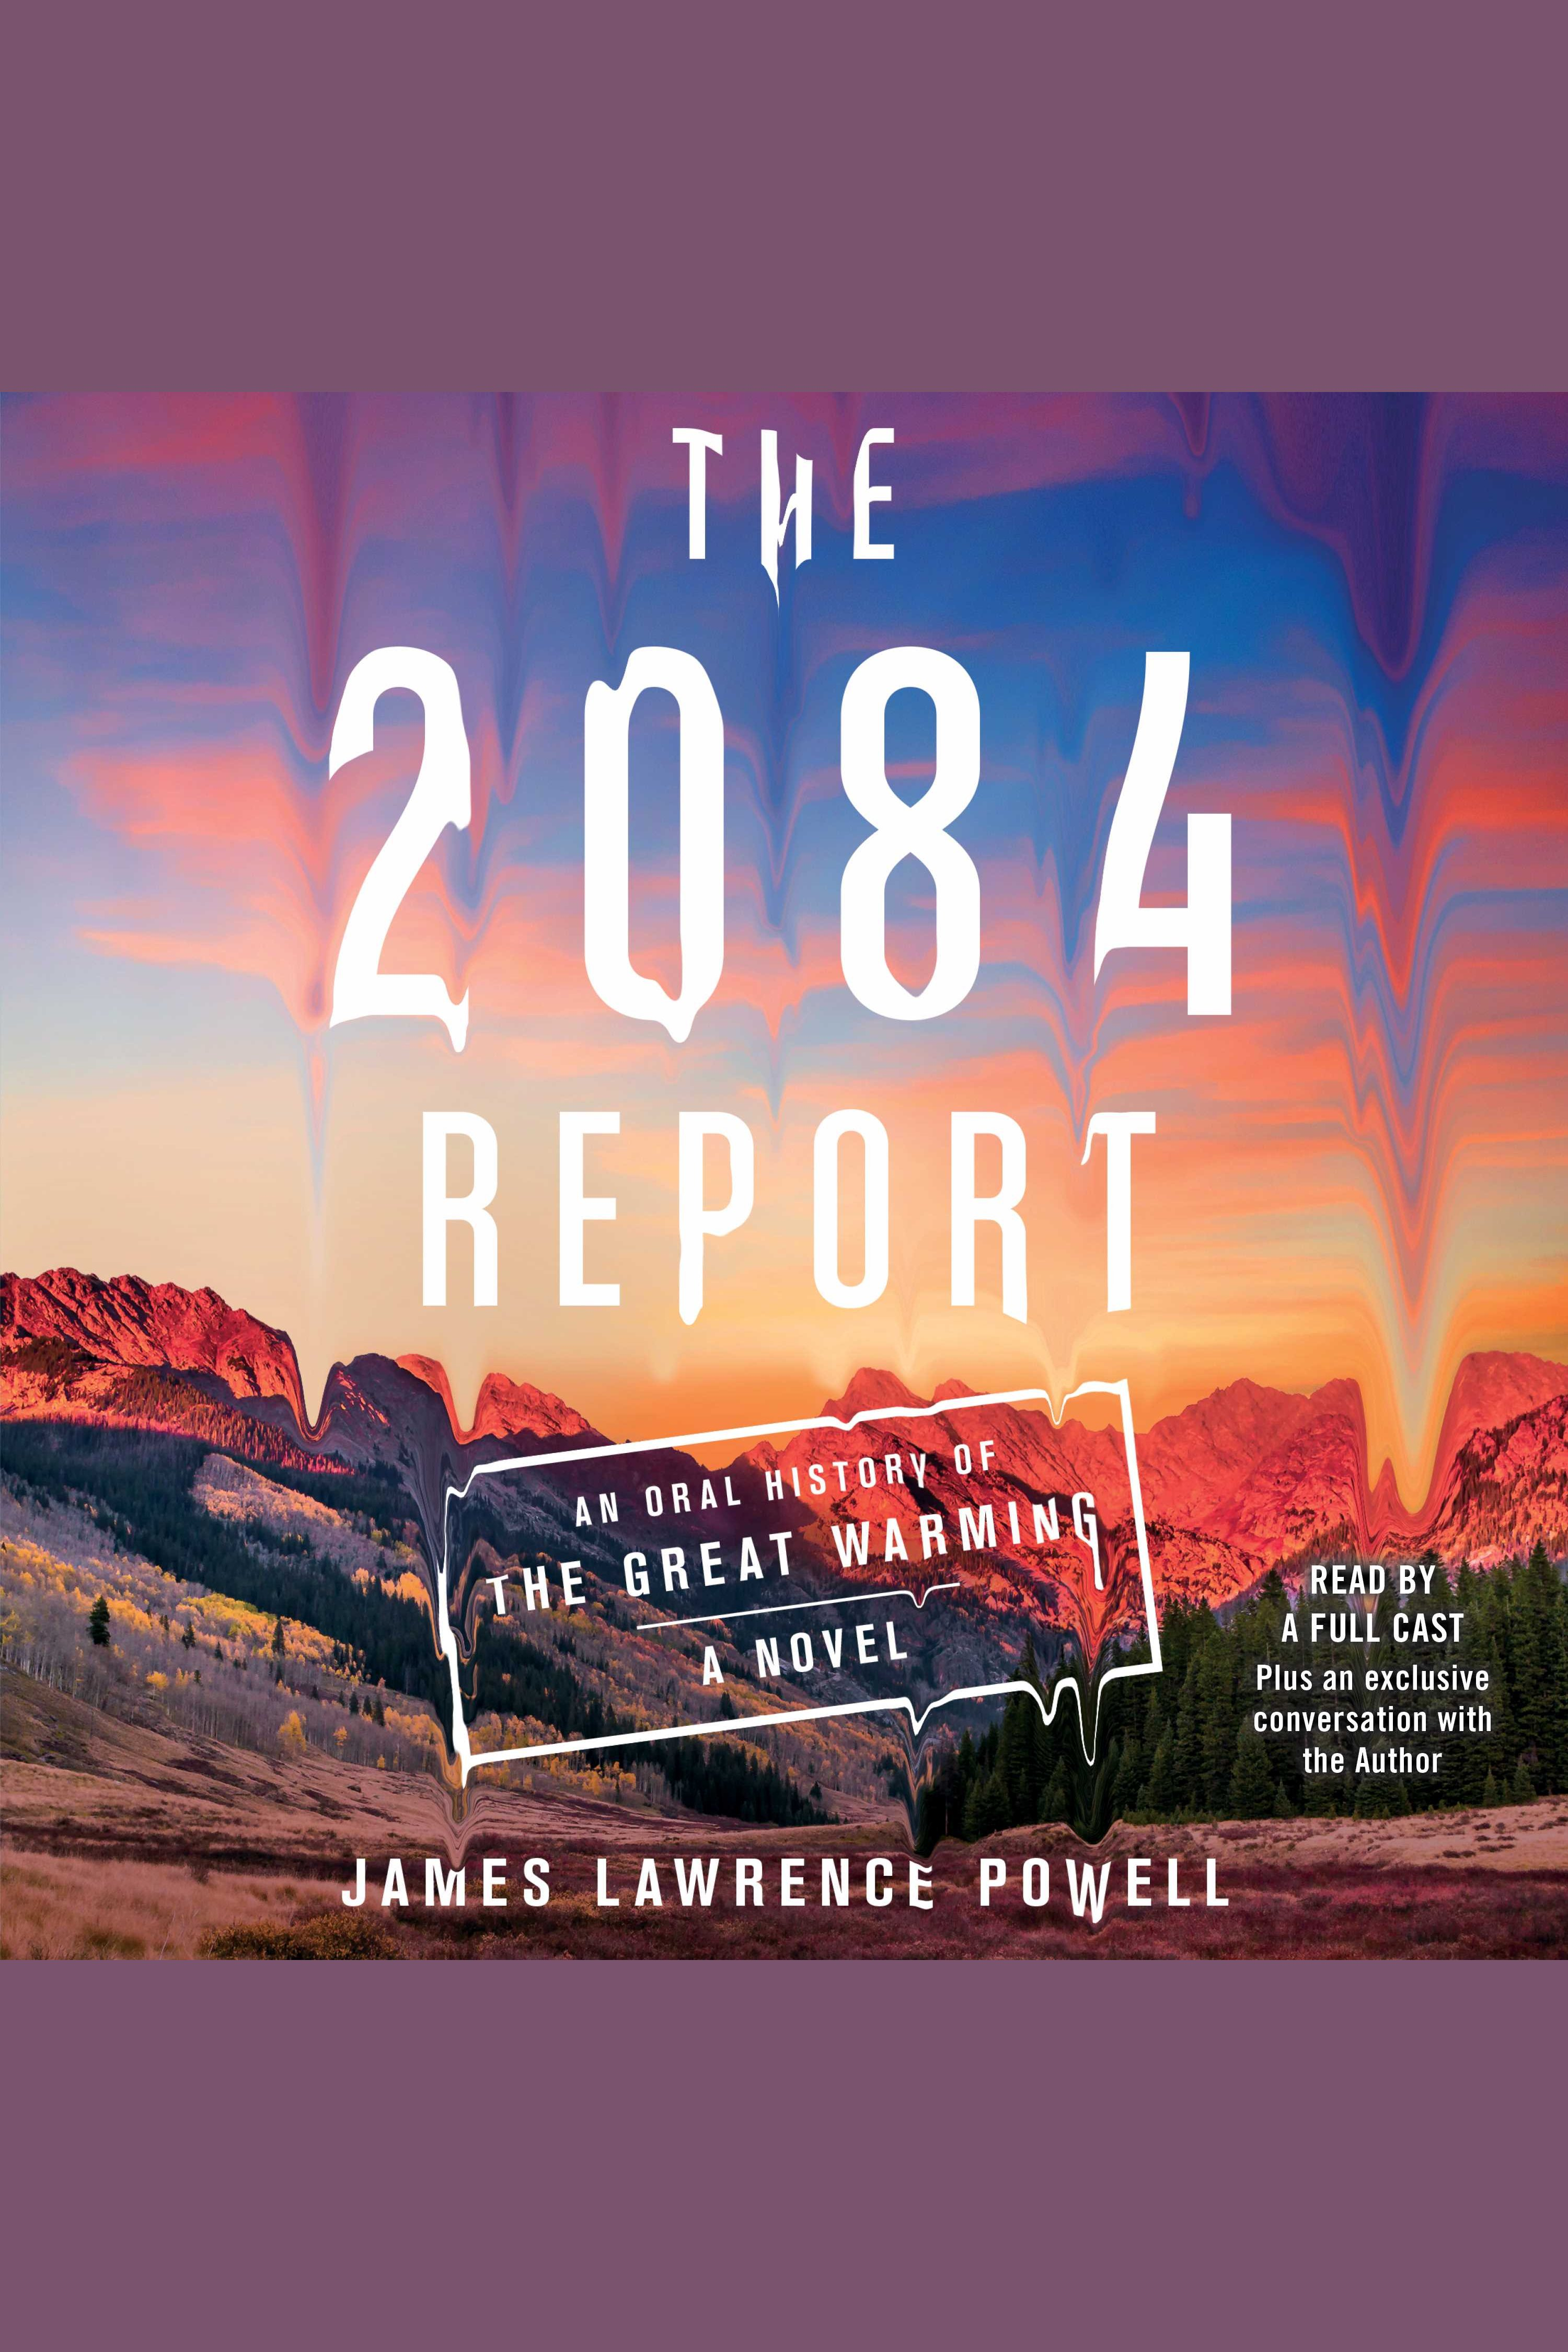 Cover Image of The 2084 Report